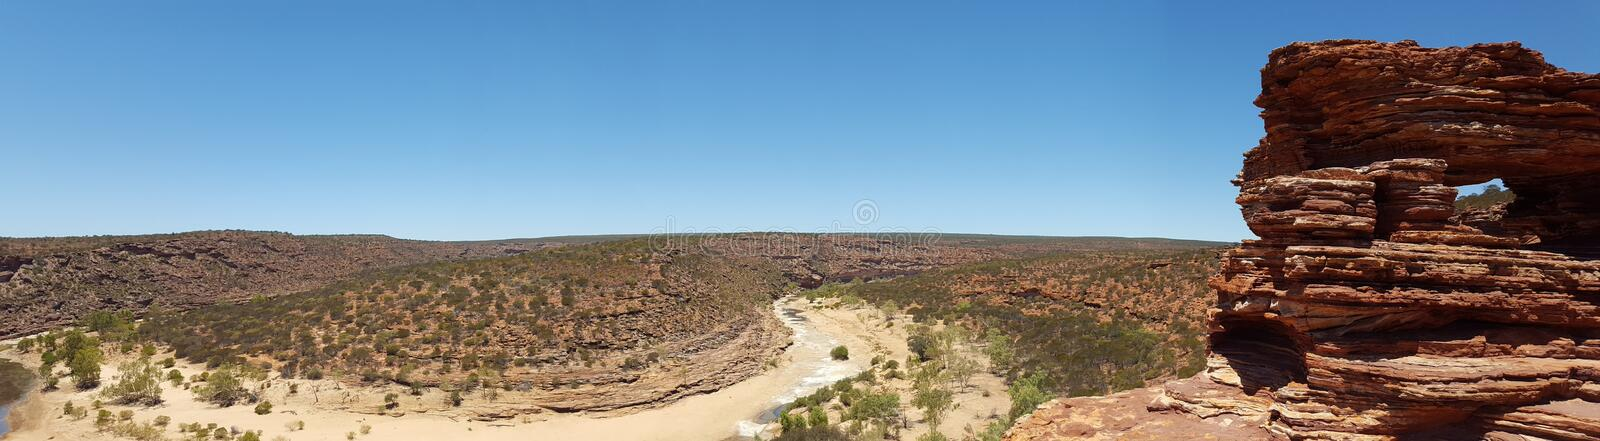 Panoramic landscape Australian outback. Kalbarri, scene, nature, rock, formation, cliff, hike, trek, outdoors, adventure, skyline, blue, frame, background stock photography